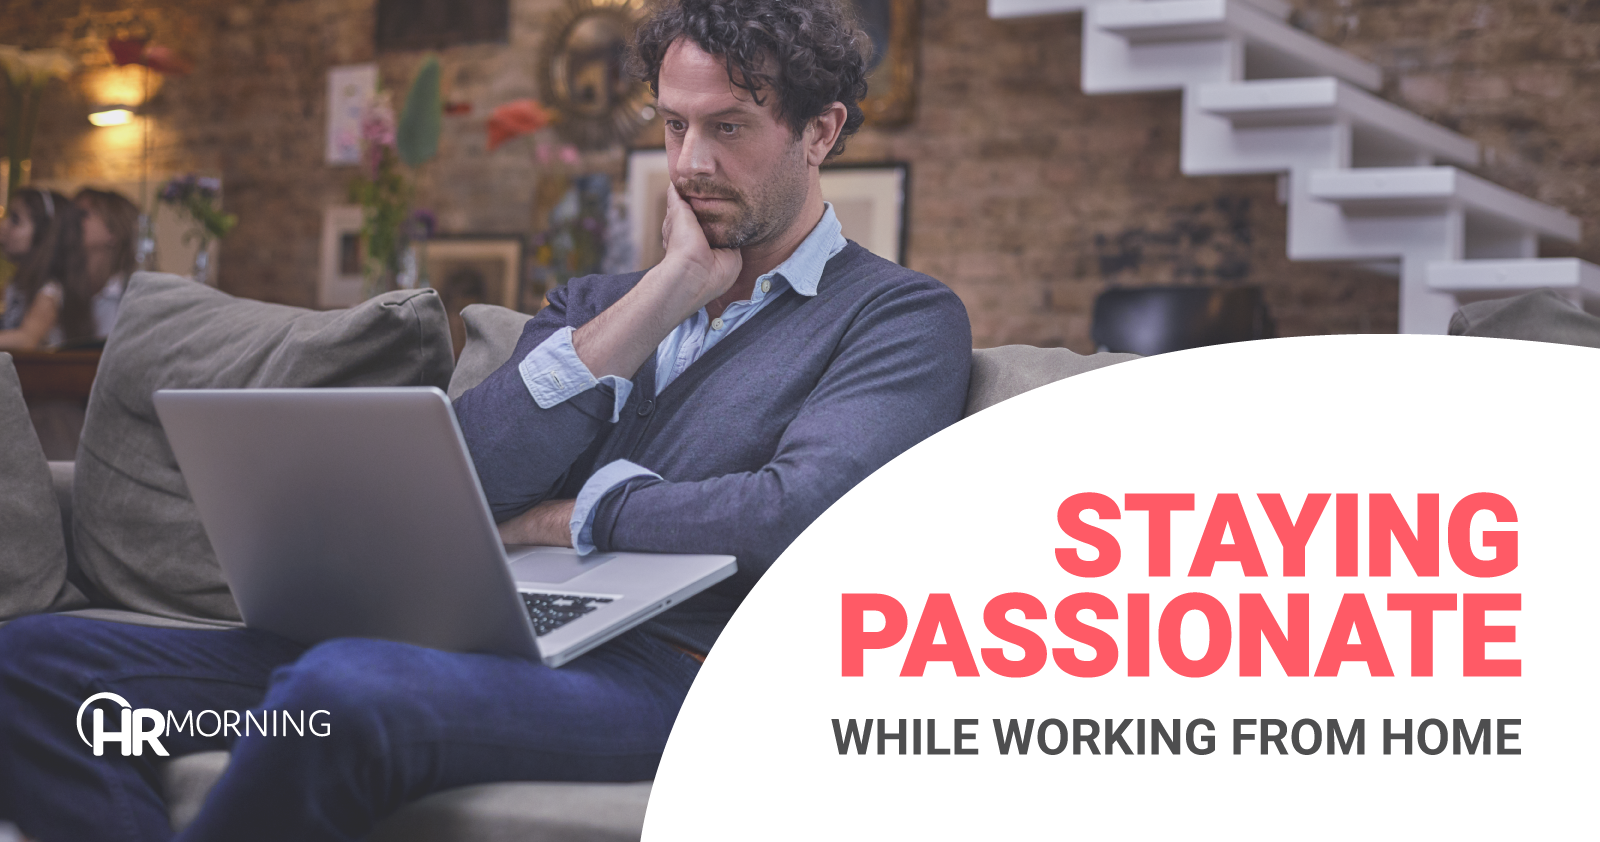 Staying Passionate while working from home